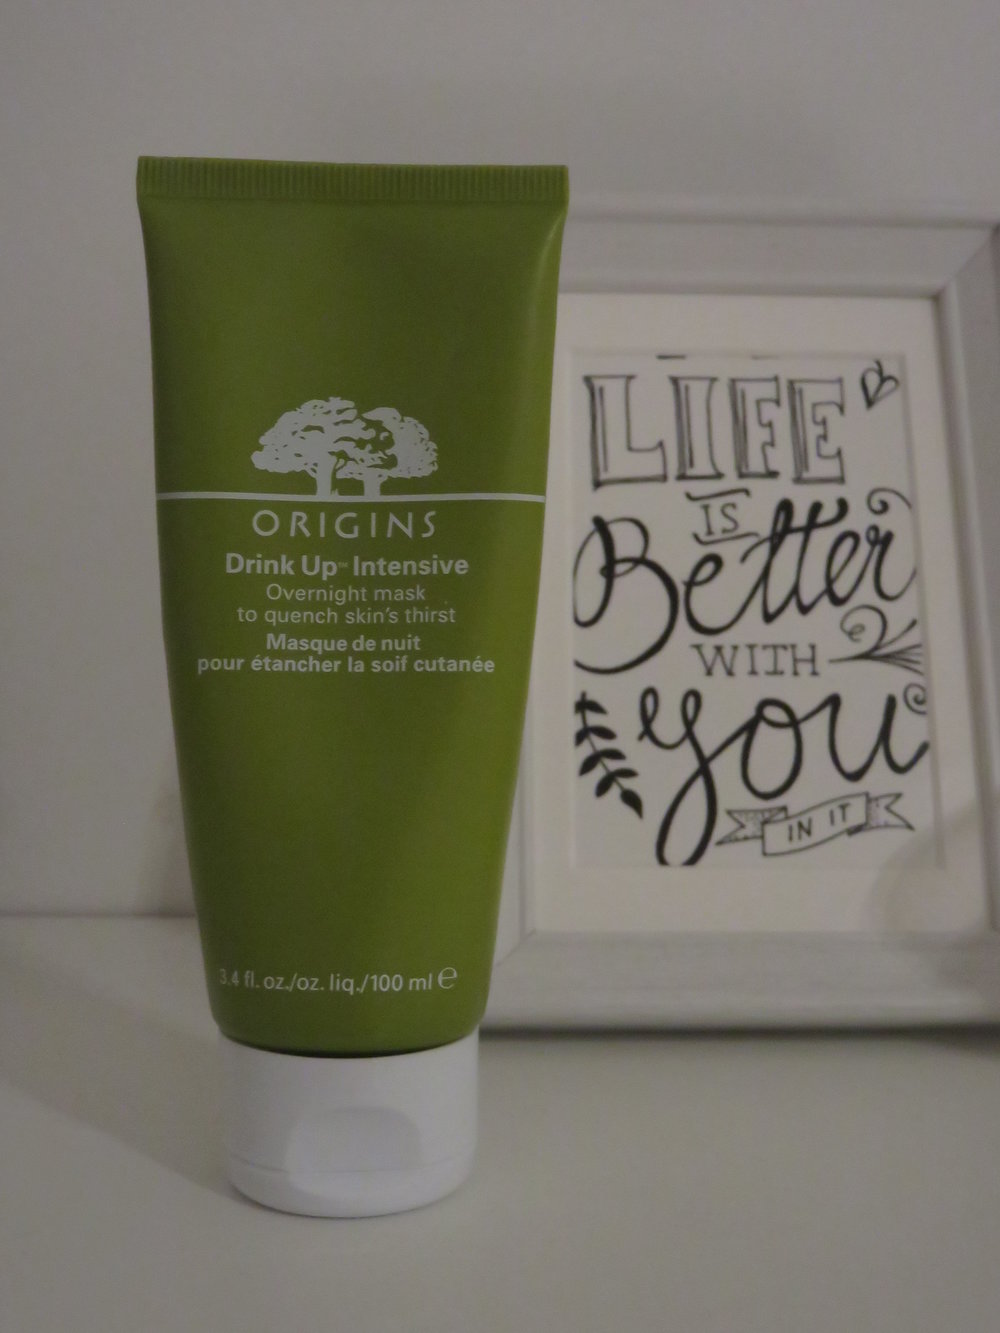 Drink-Up Intensive Overnight mask by Origins.